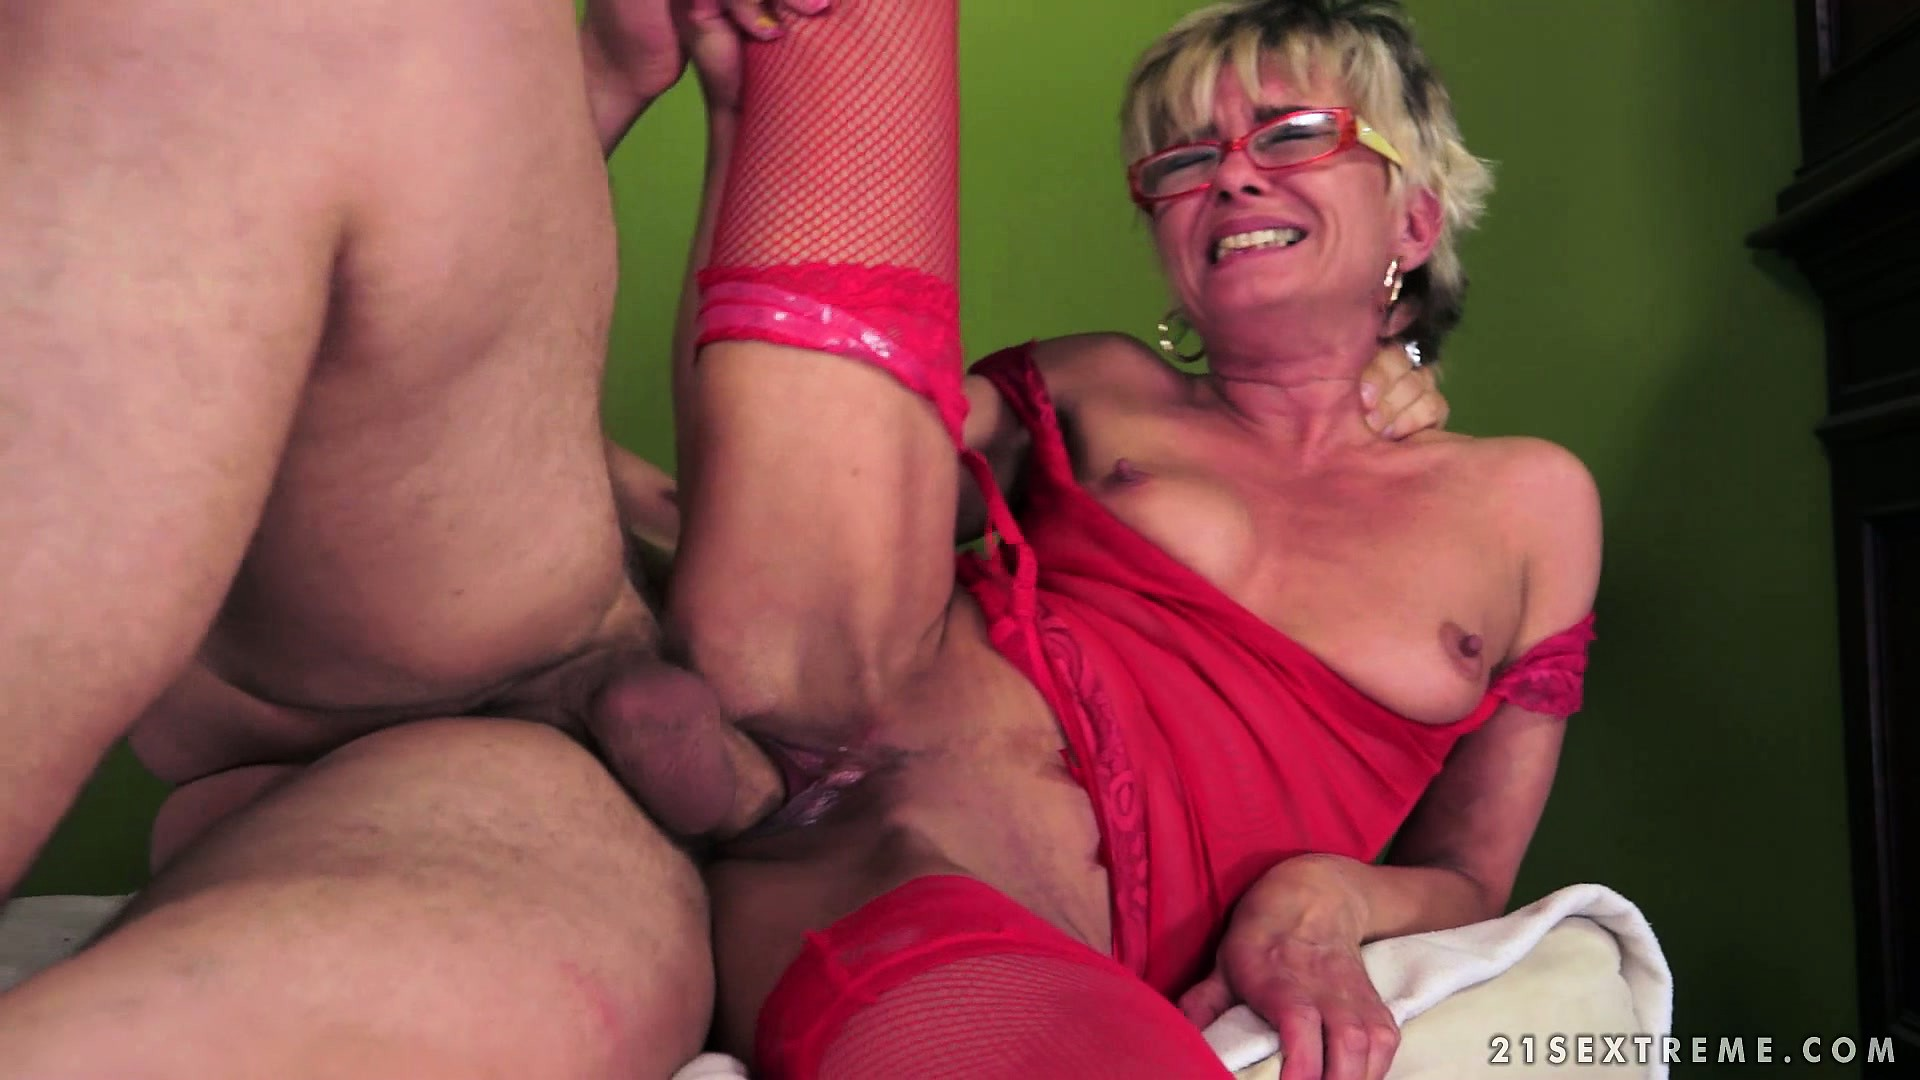 Porno Video of Horny Granny Gets A Young Man's Cock To Fuck Her And Chew On